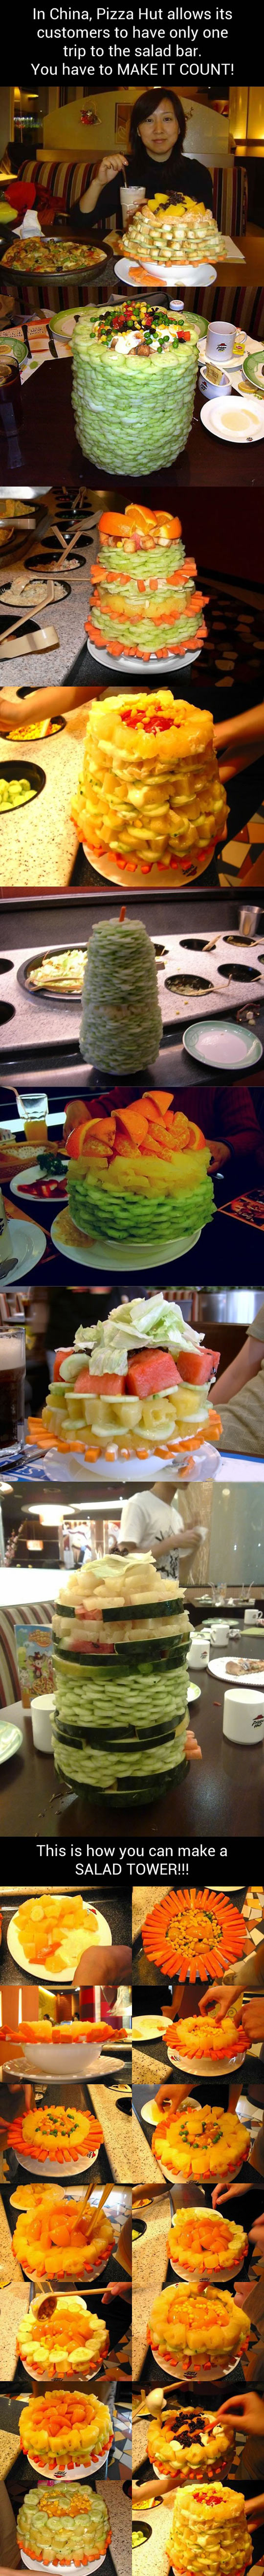 how to build a salad tower